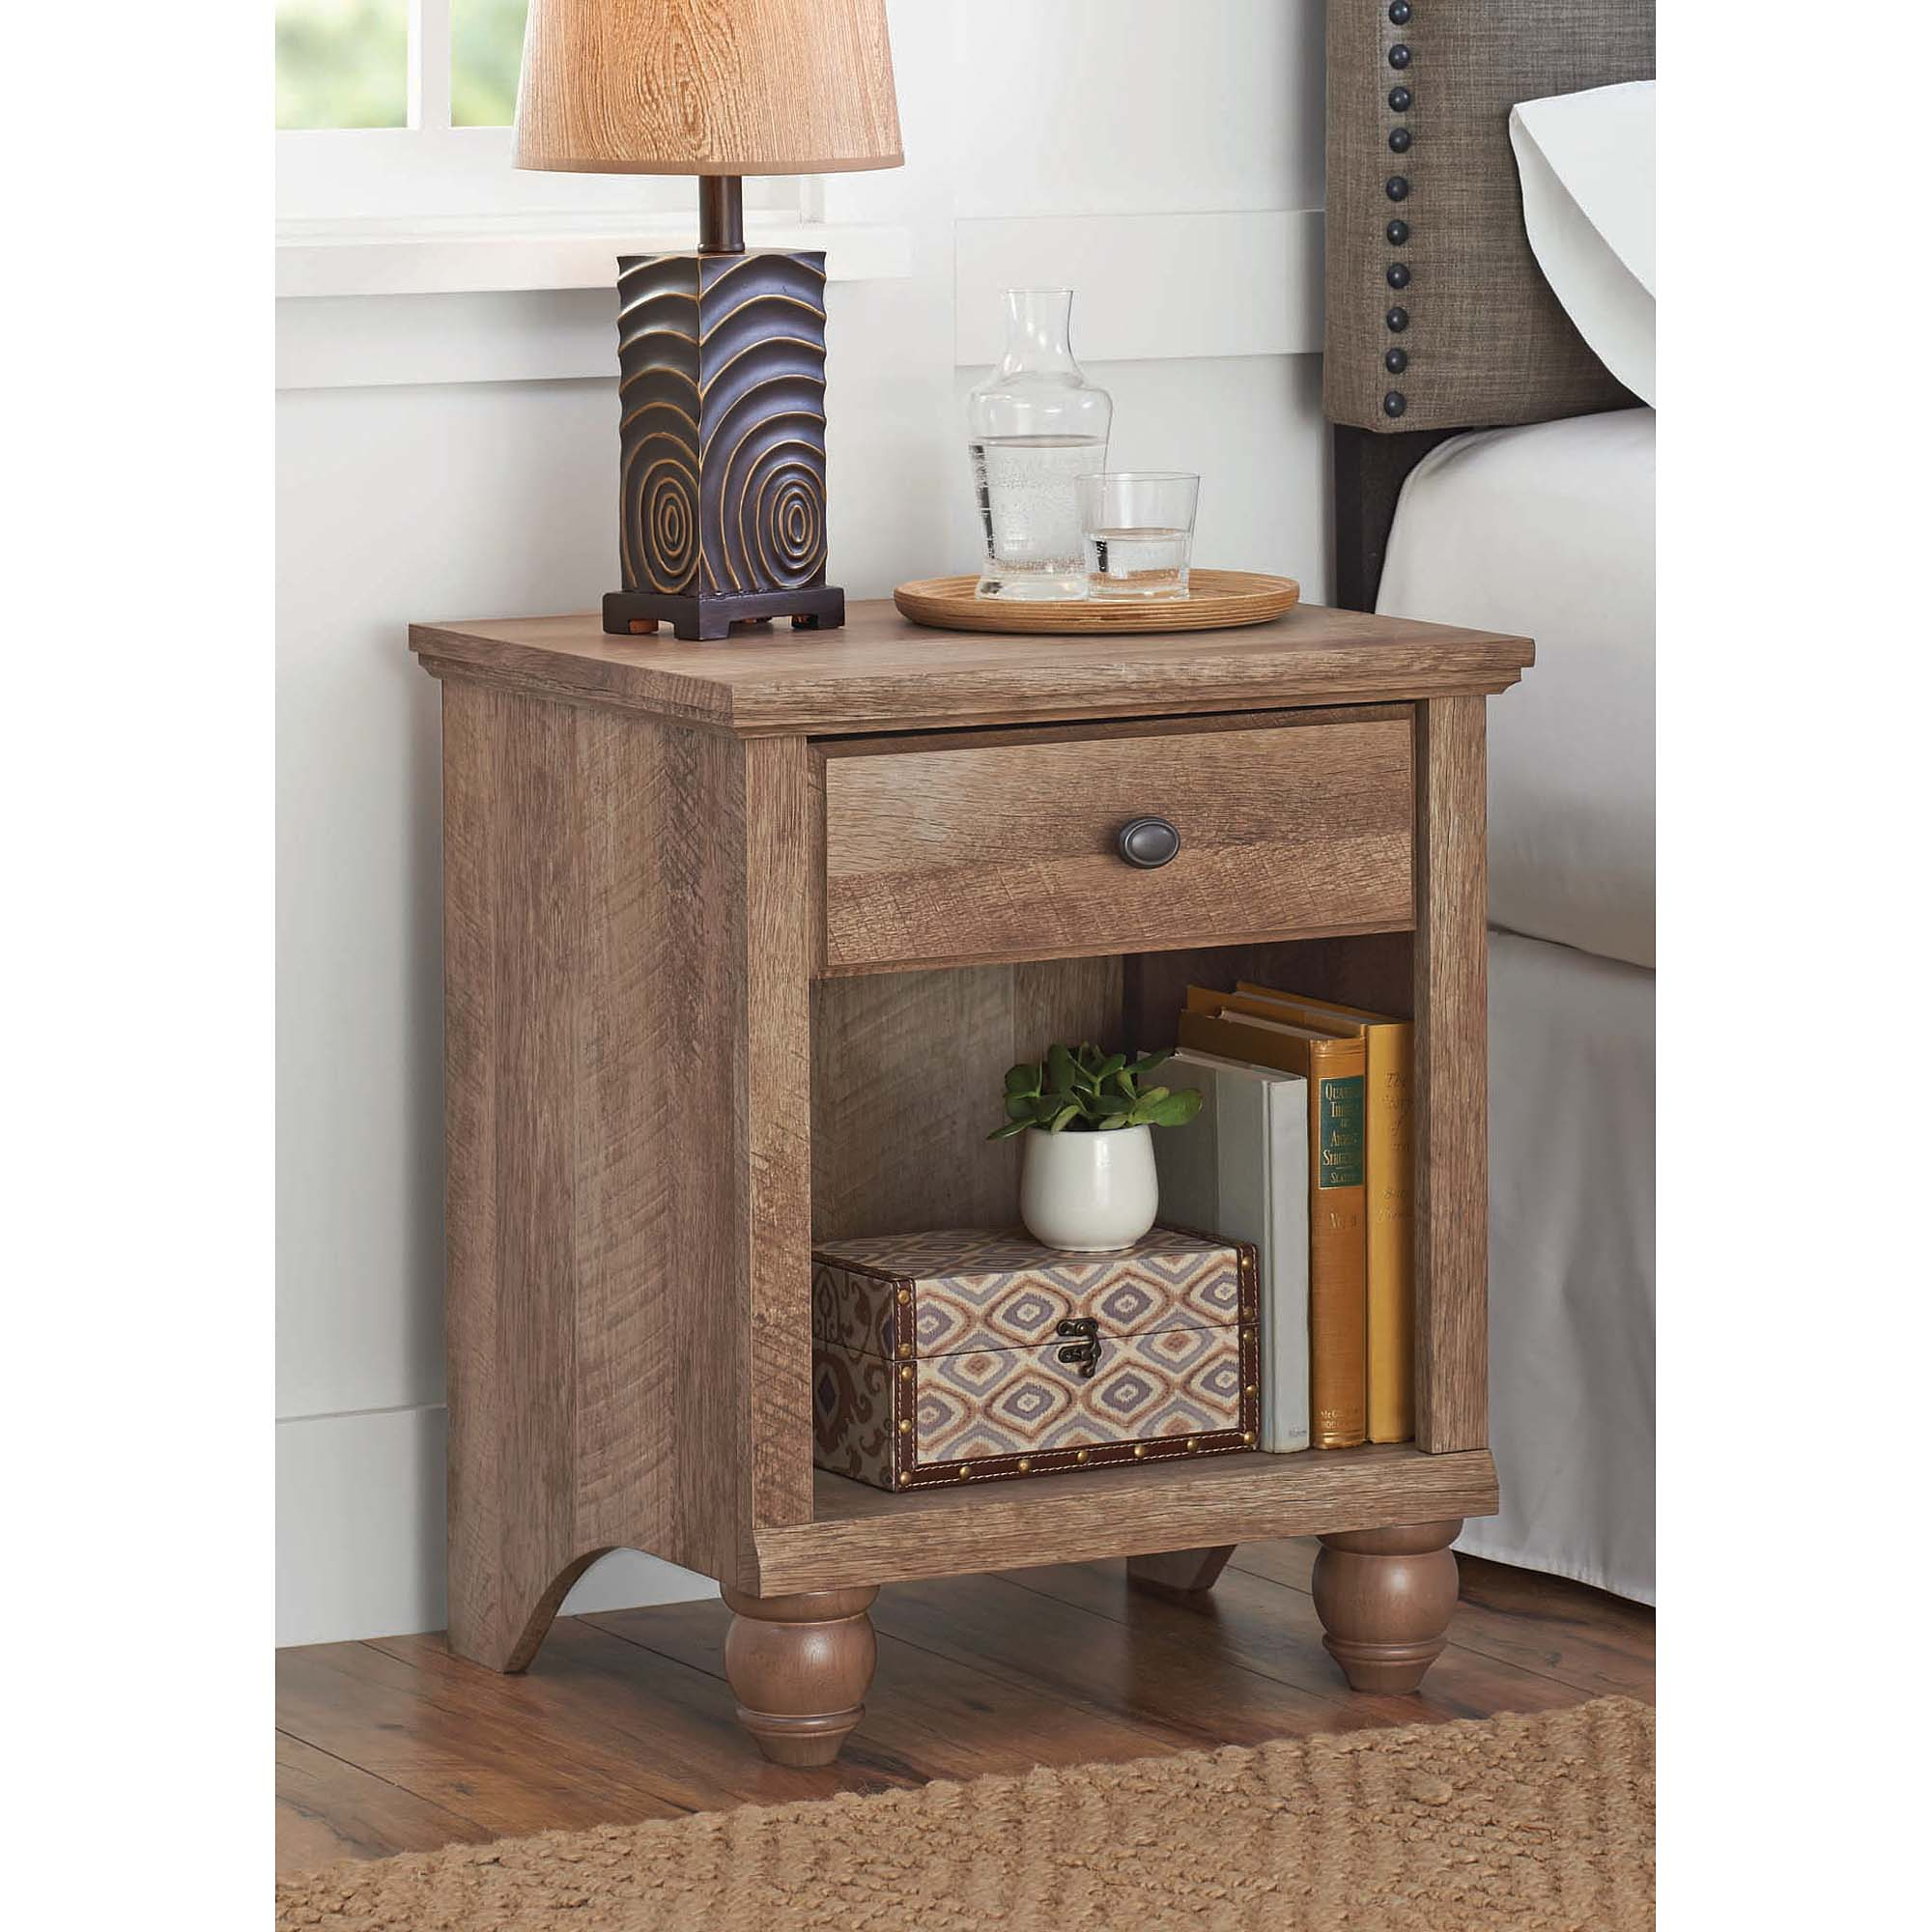 Charming Better Homes And Gardens Crossmill Accent Table, Multiple Finishes    Walmart.com Photo Gallery